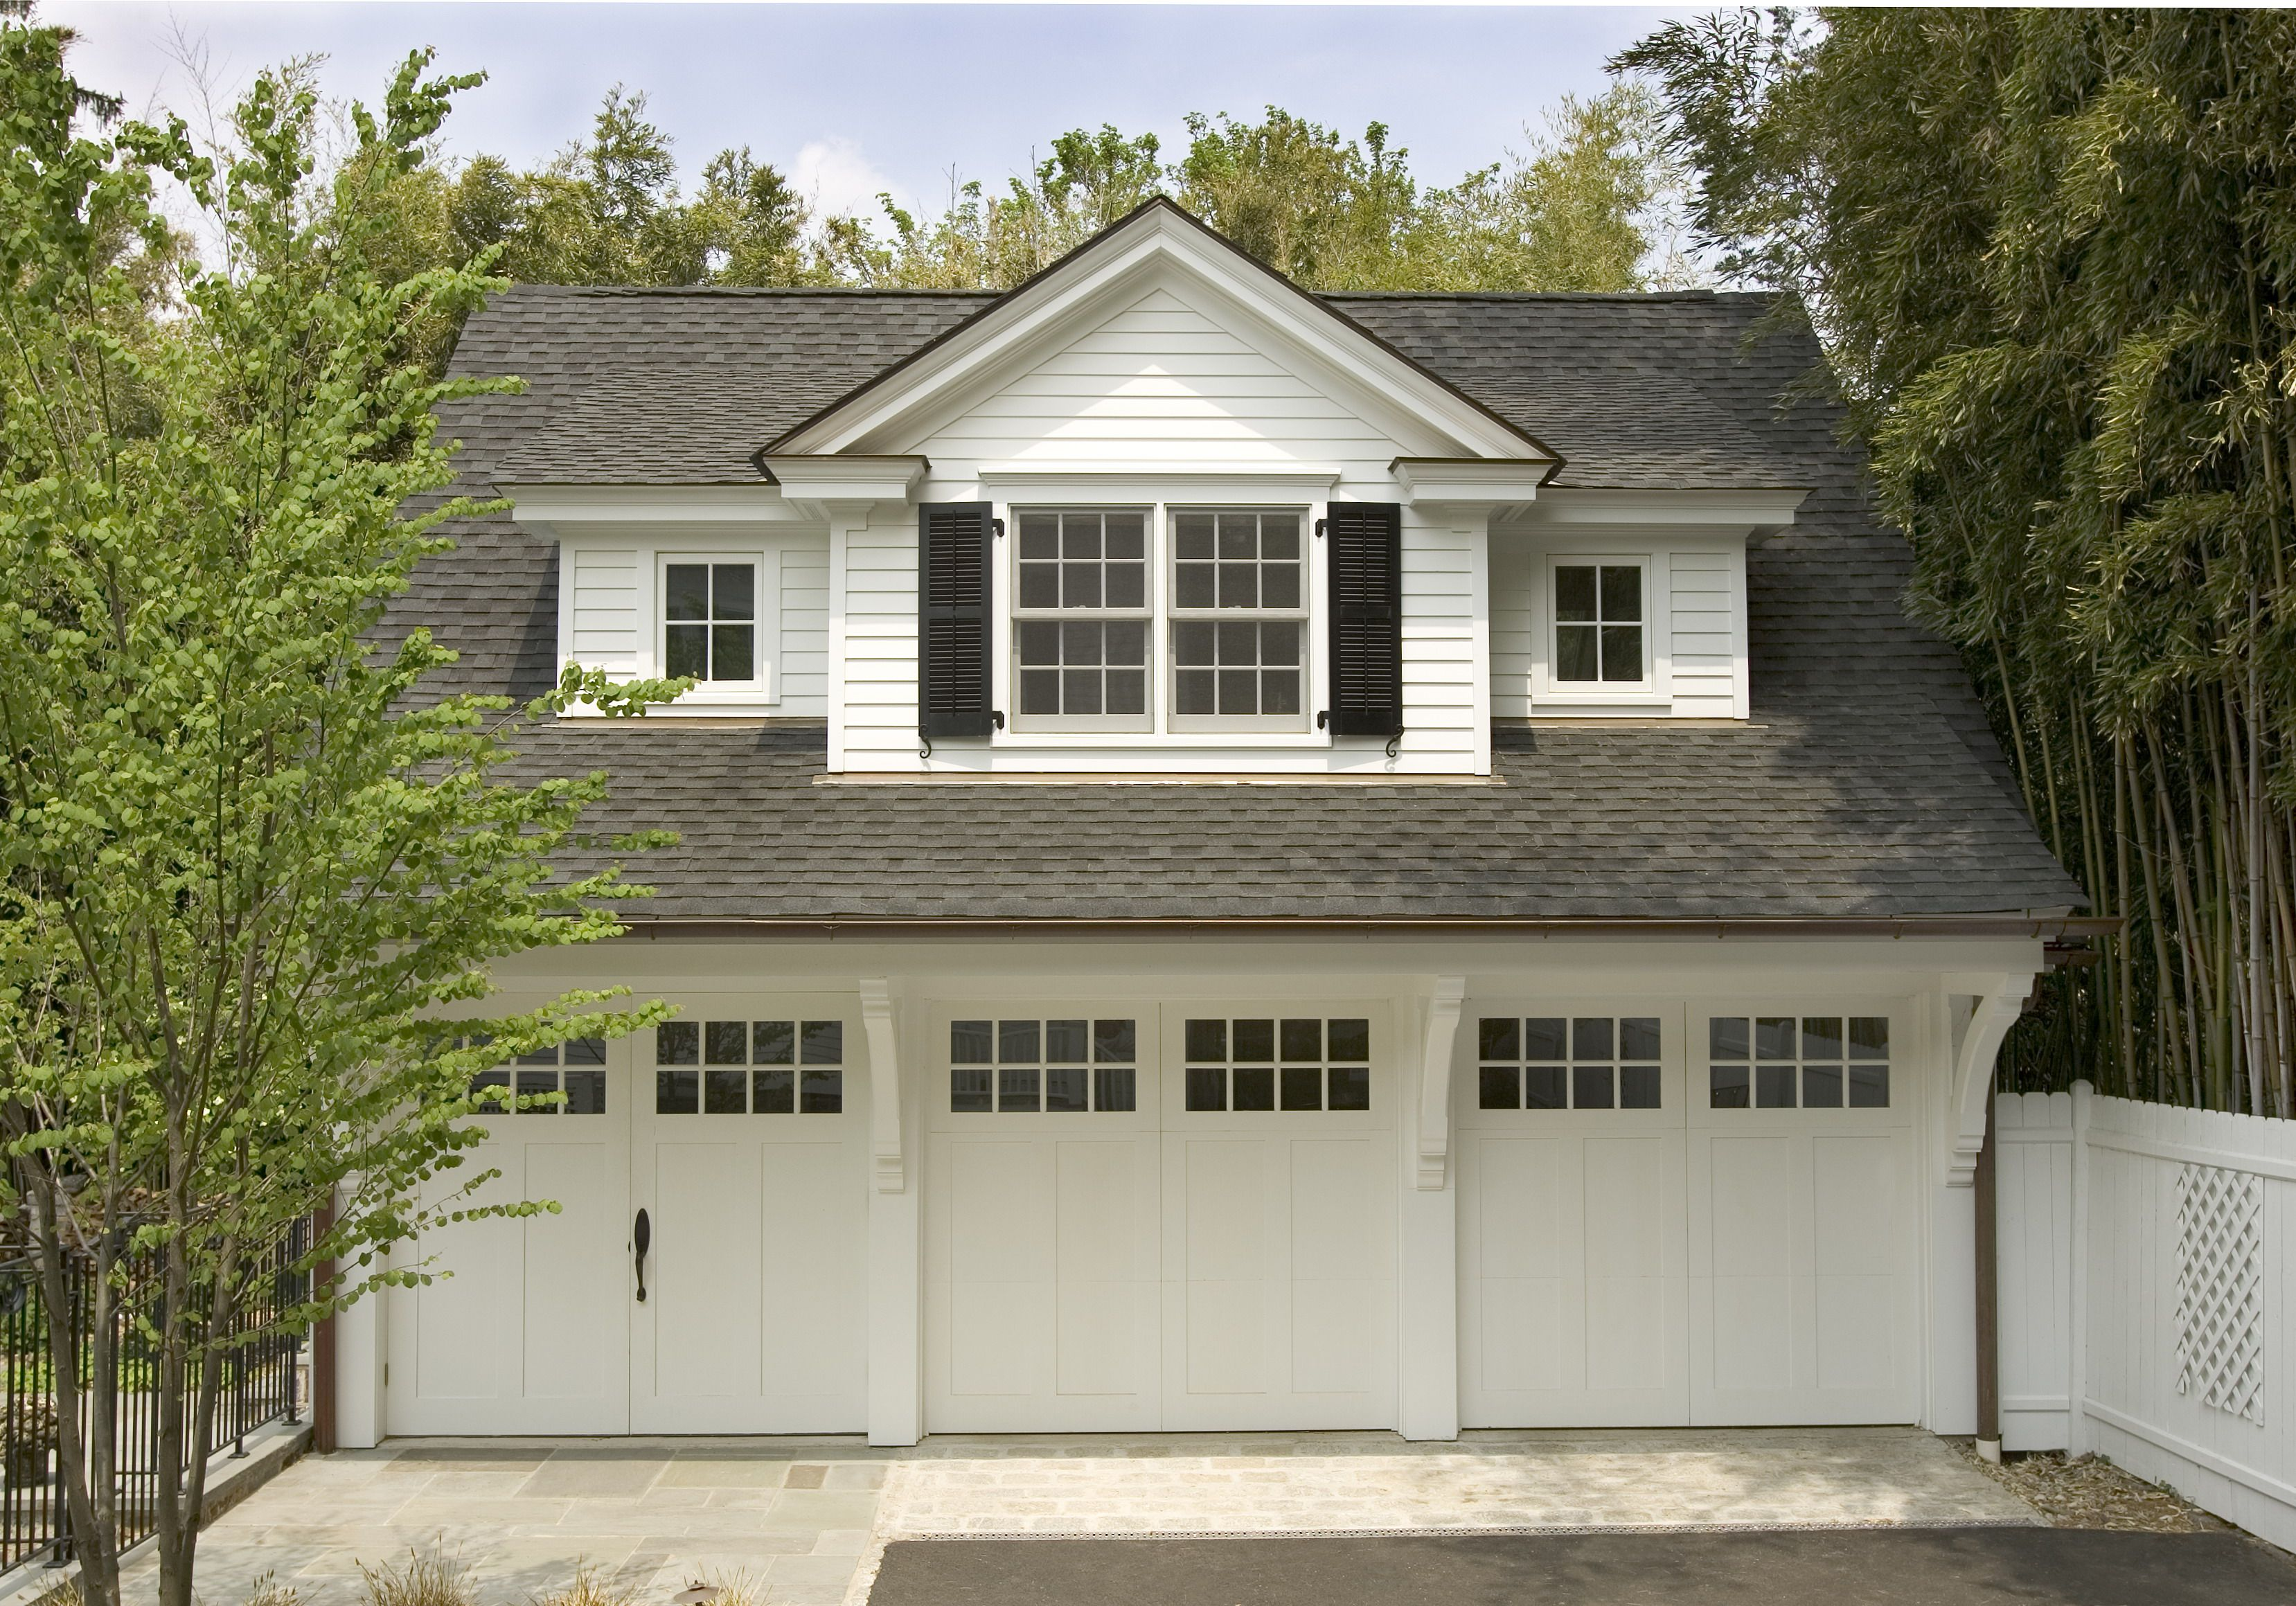 This Carriage House With Lots Of Charm And Detail Has Three Car Bays A Pool Changing Area And Inclu Above Garage Apartment Carriage House Garage Garage Design